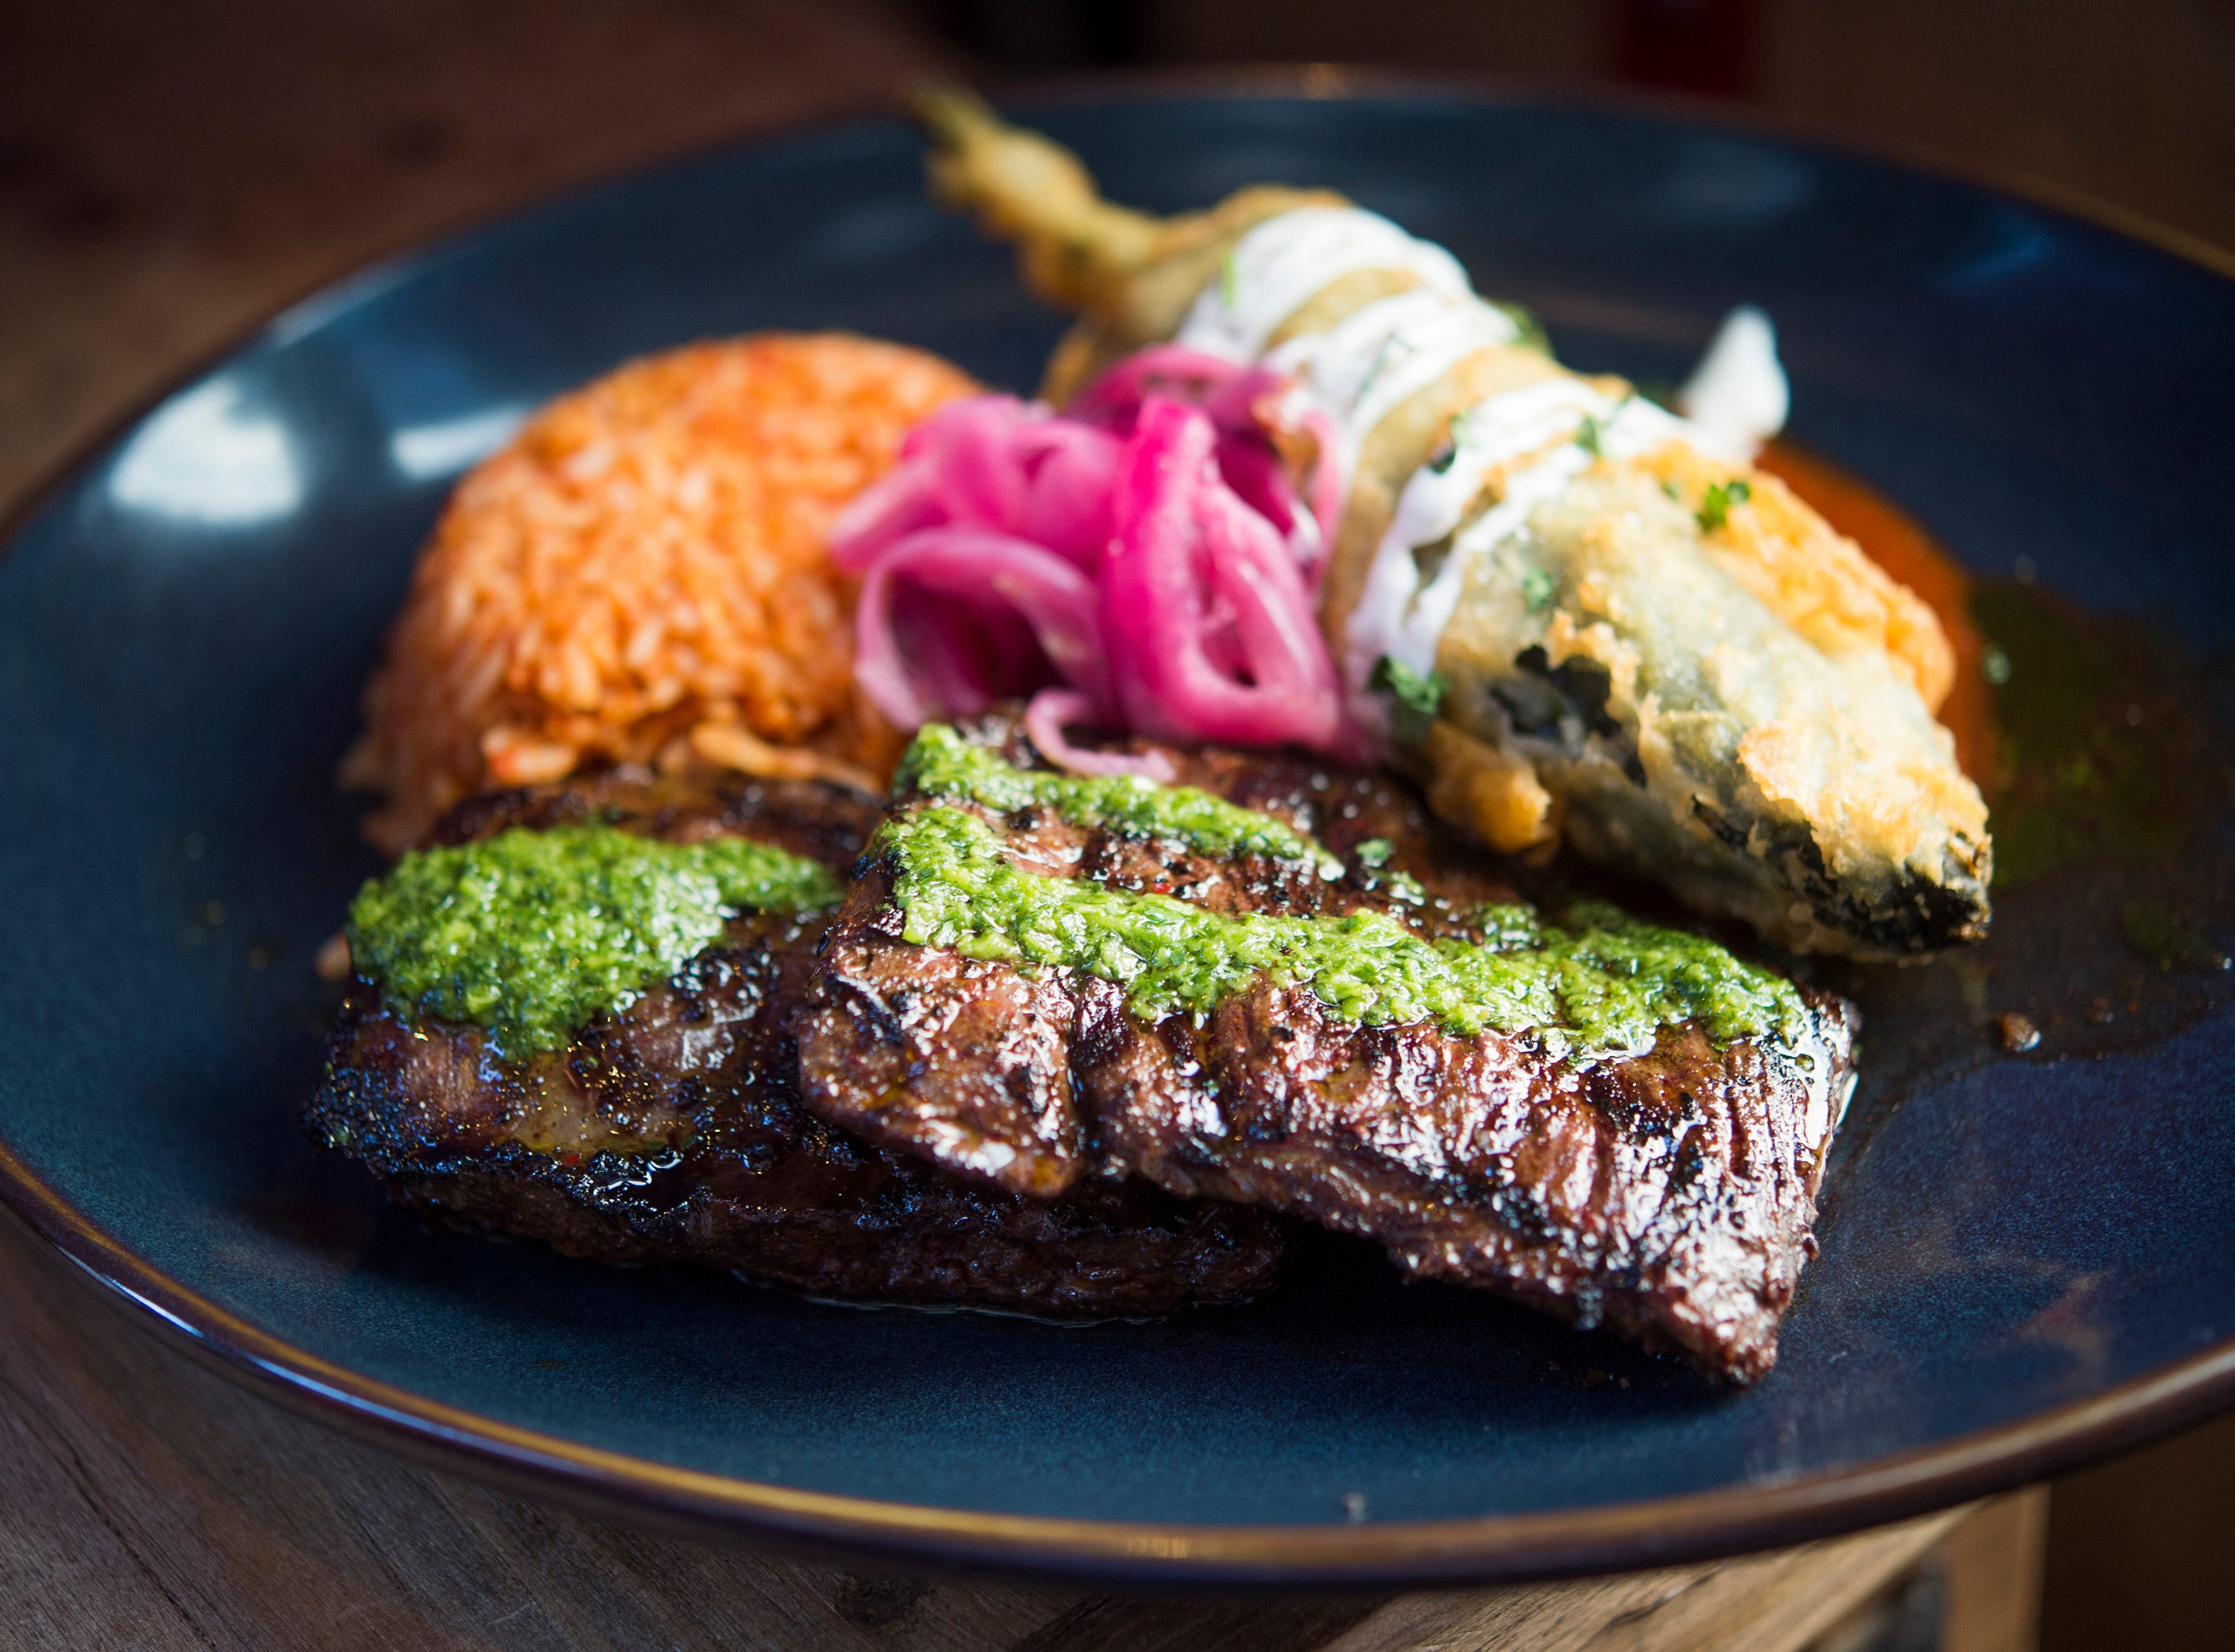 Grilled marinated steak at Rocco's Tacos & Tequila Bar.